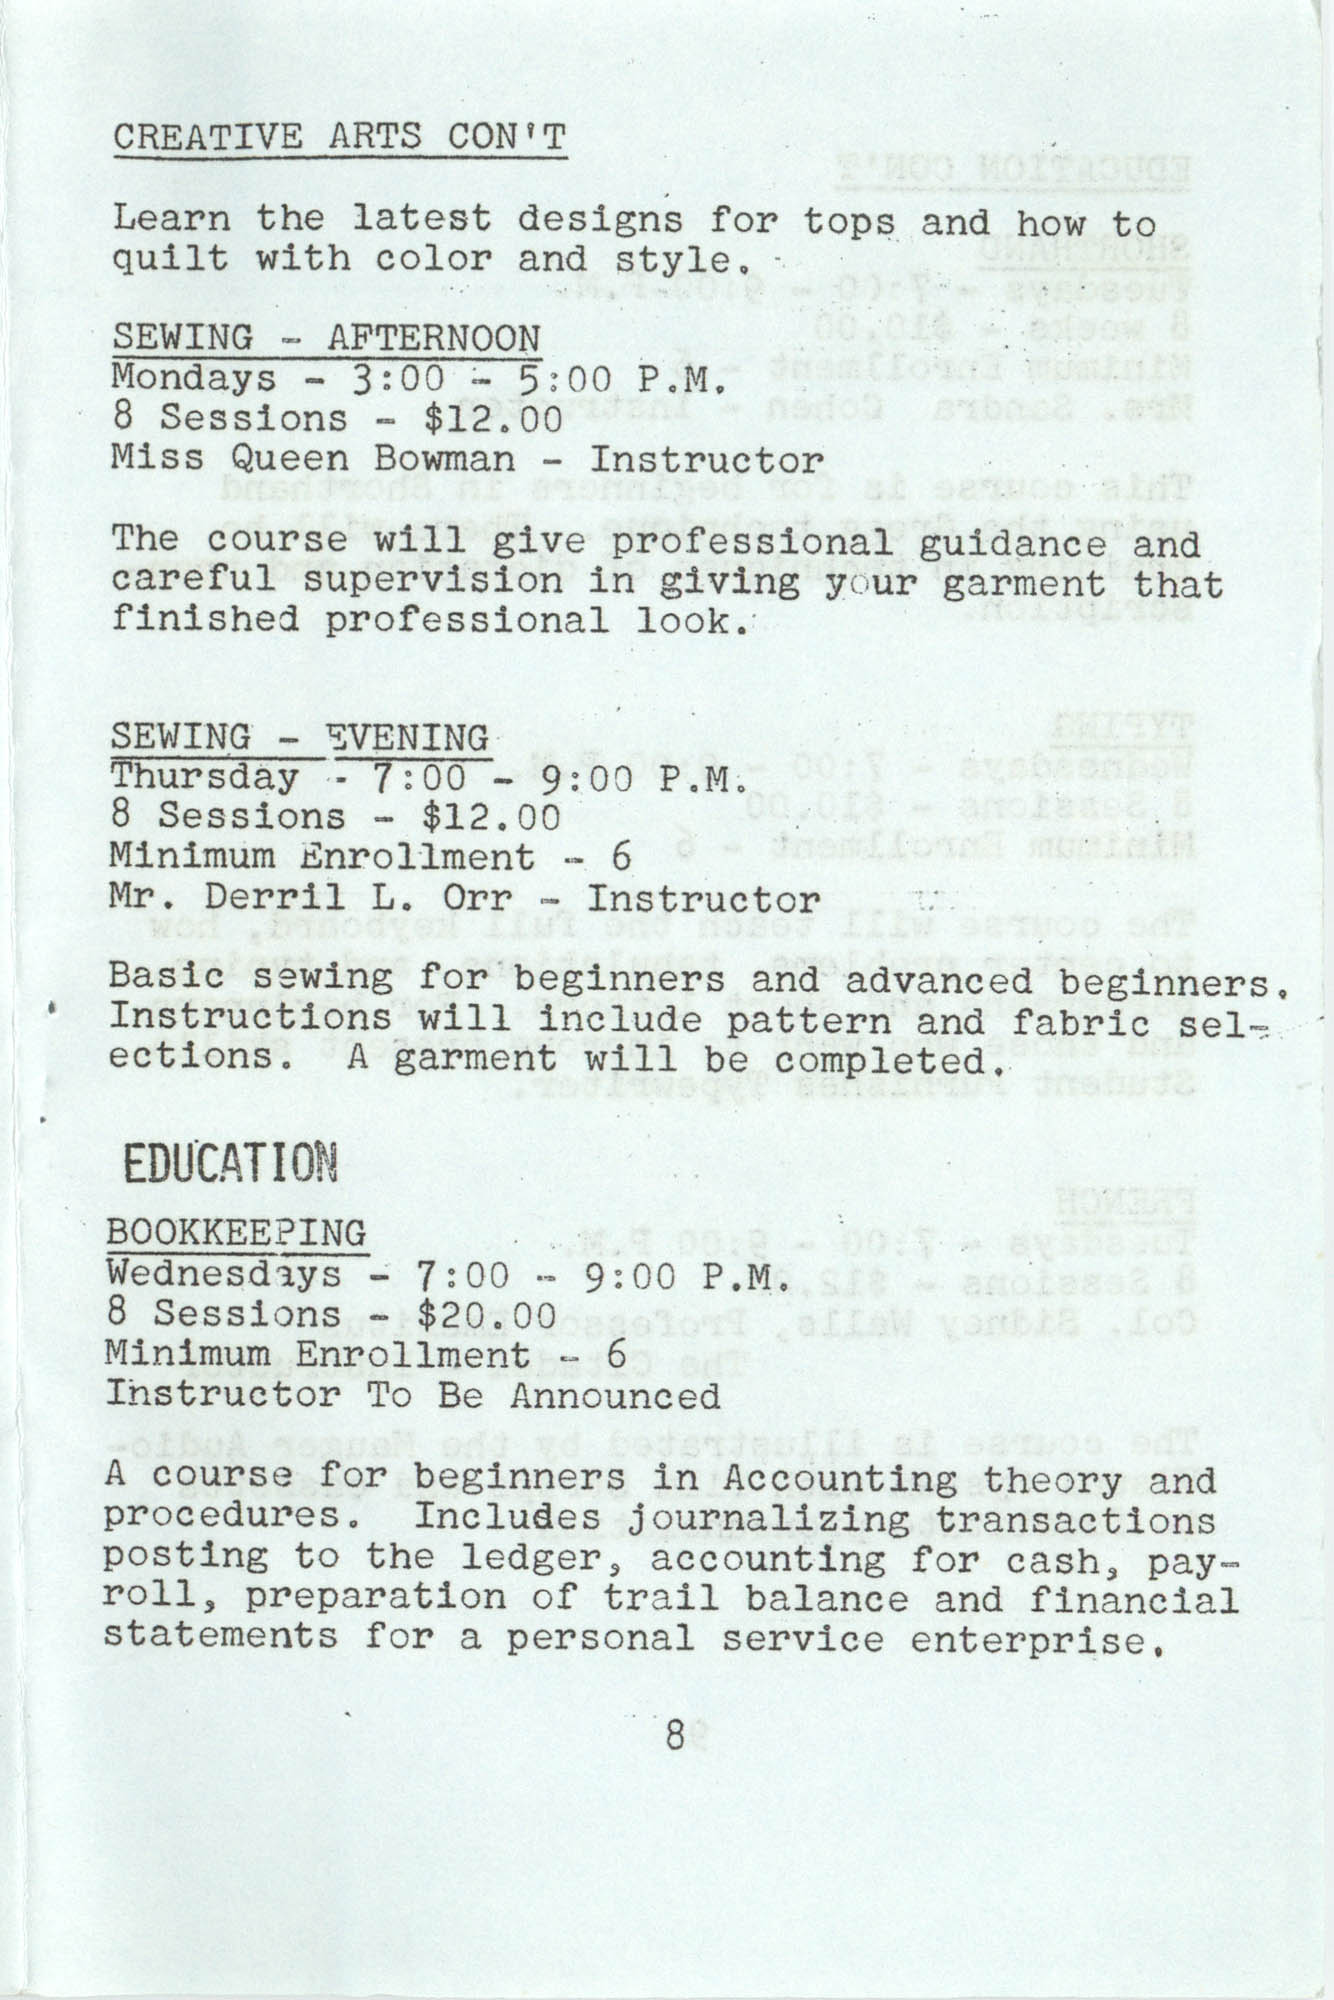 Spring 1975 Schedule, Y.W.C.A. of Greater Charleston, Page 8